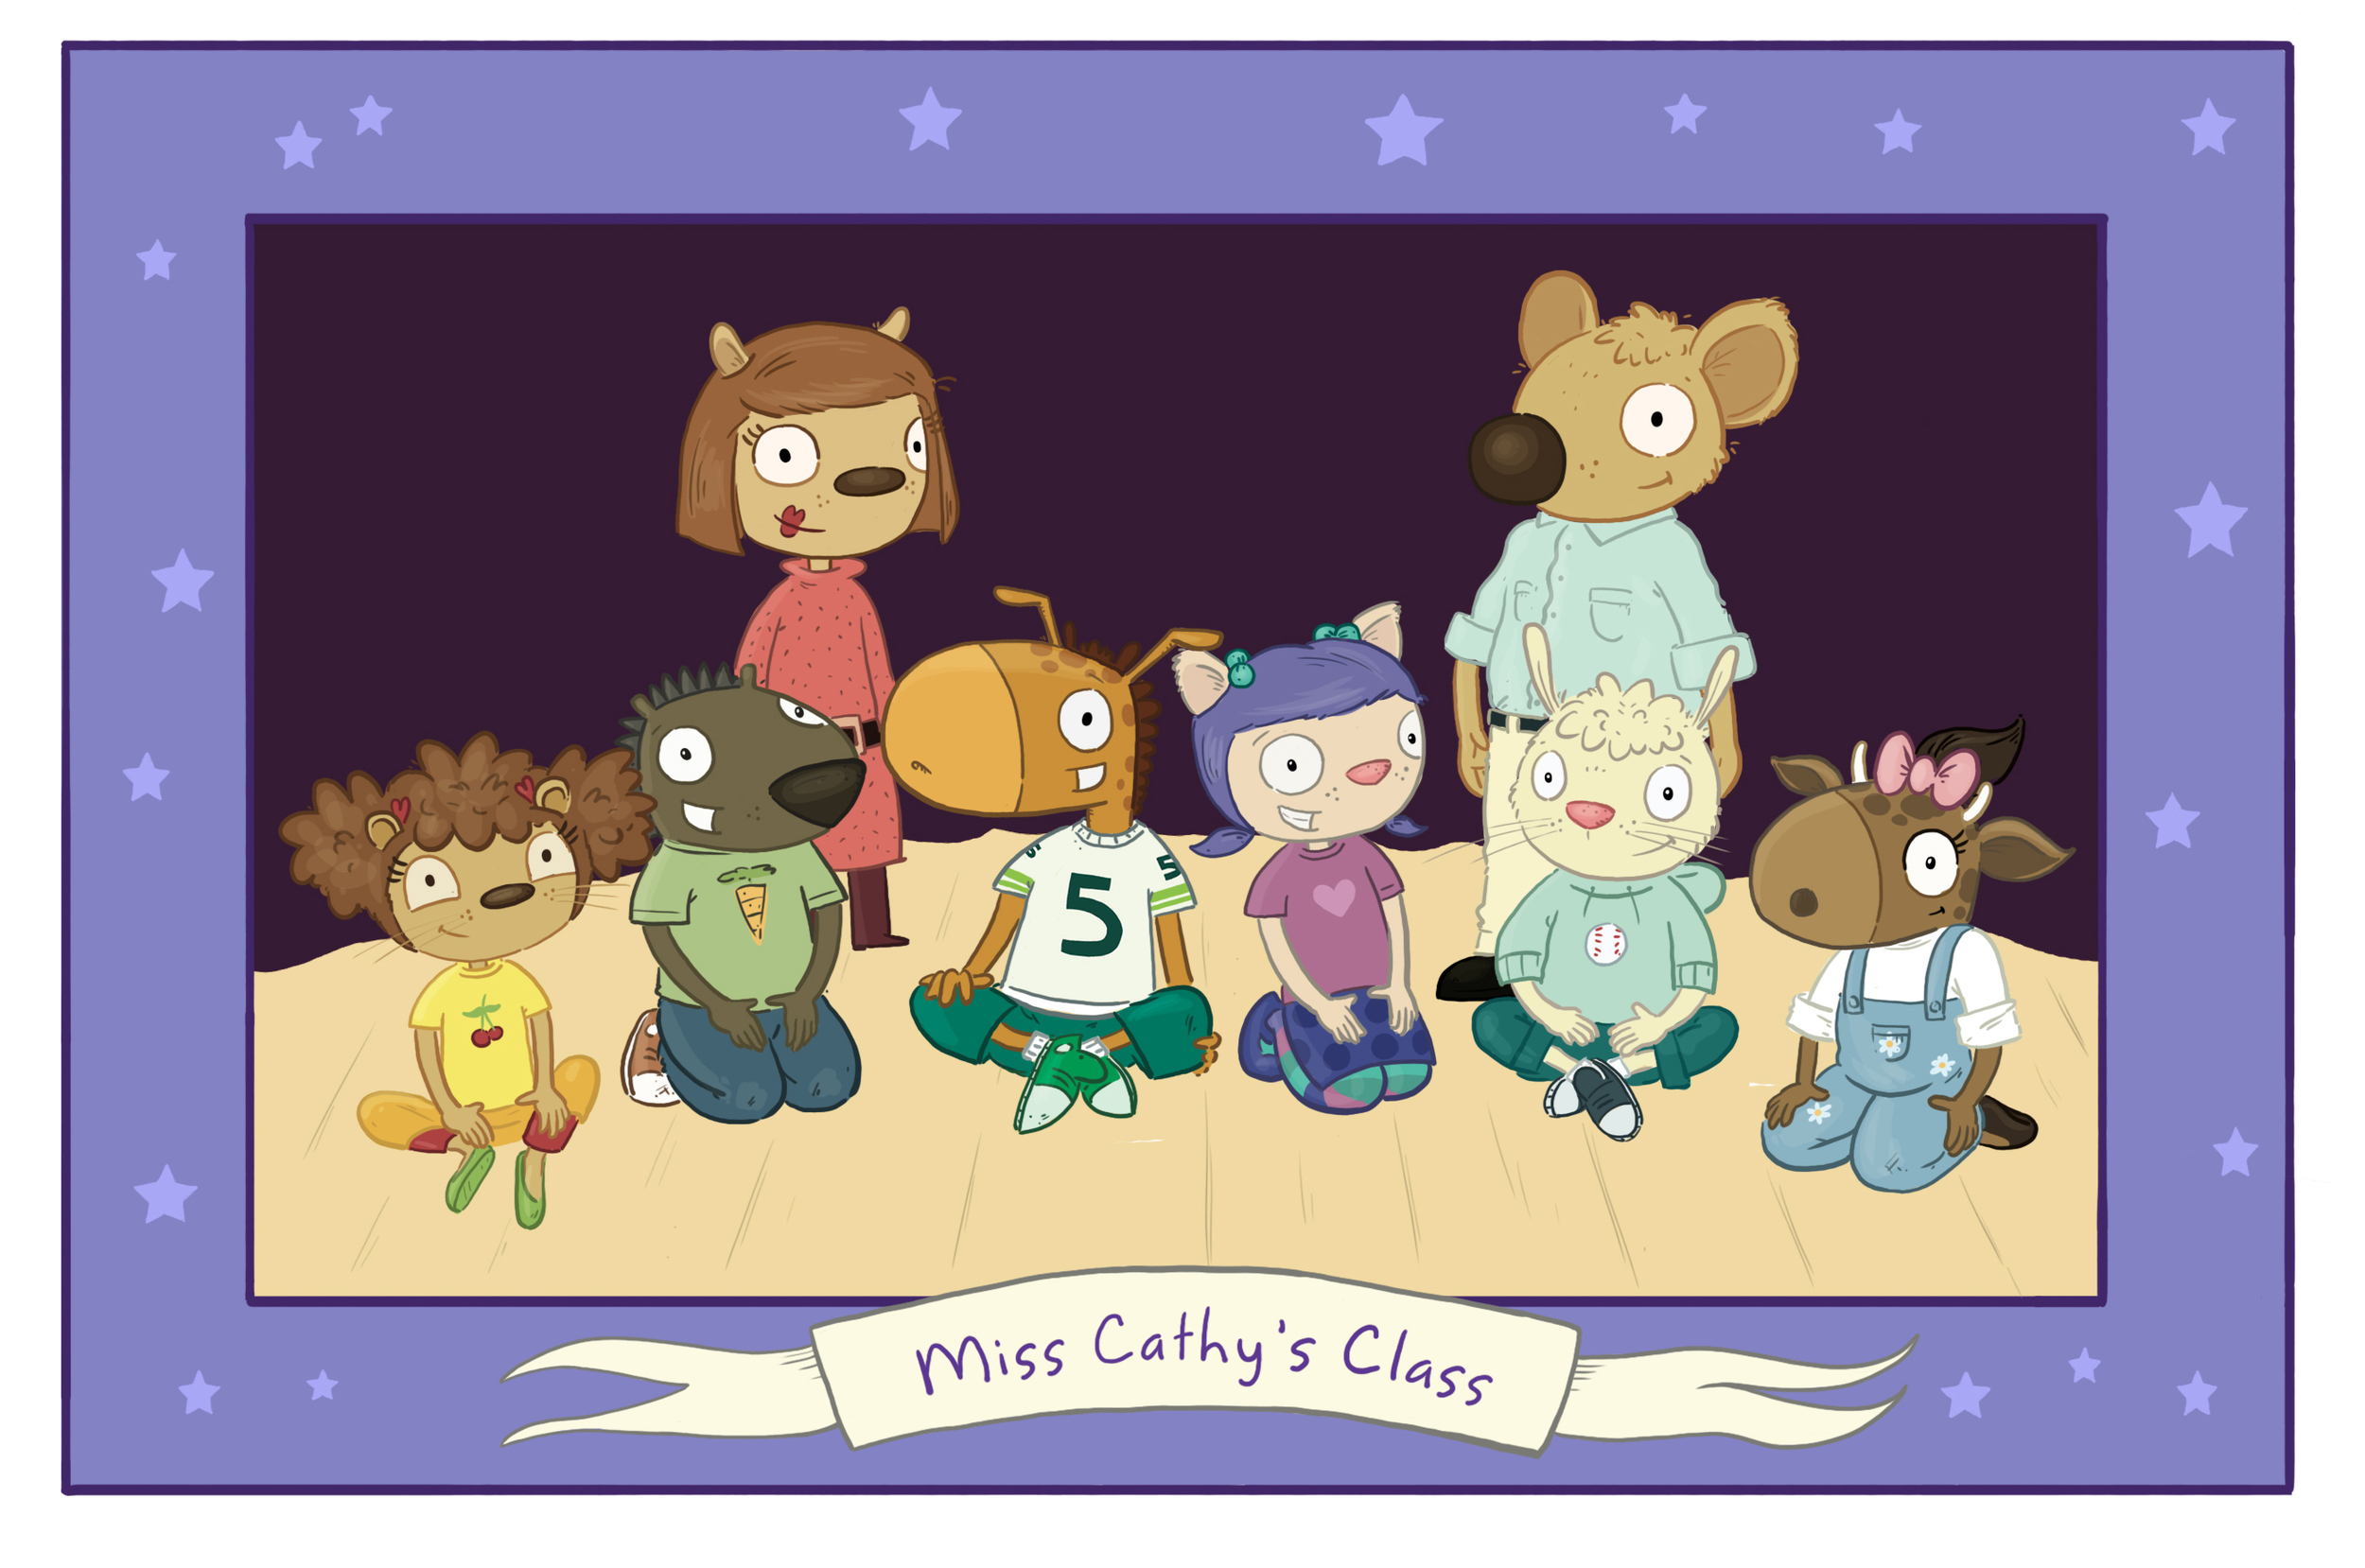 MIss Cathy, Mr. D, Emma, Ajay, Percy, Freda, Carlos and Camille